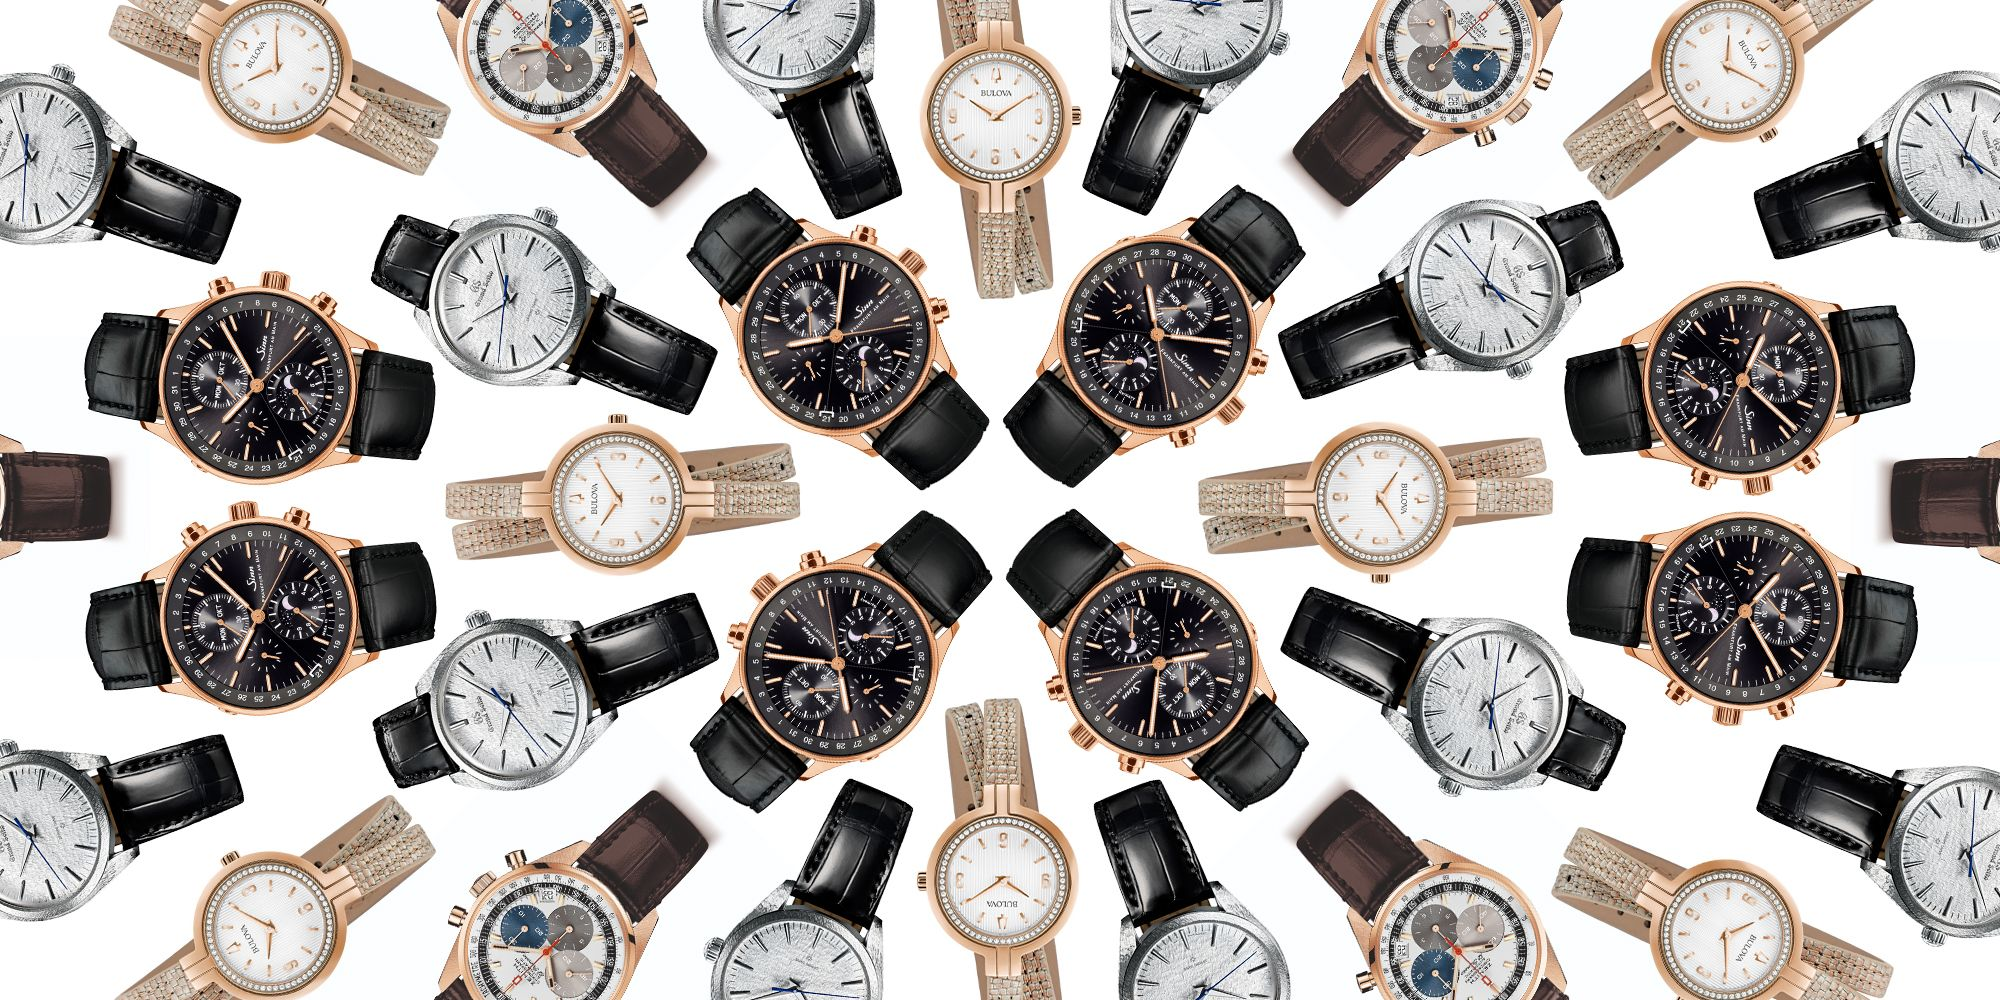 10 Noteworthy New Watches Introduced at Baselworld 2019